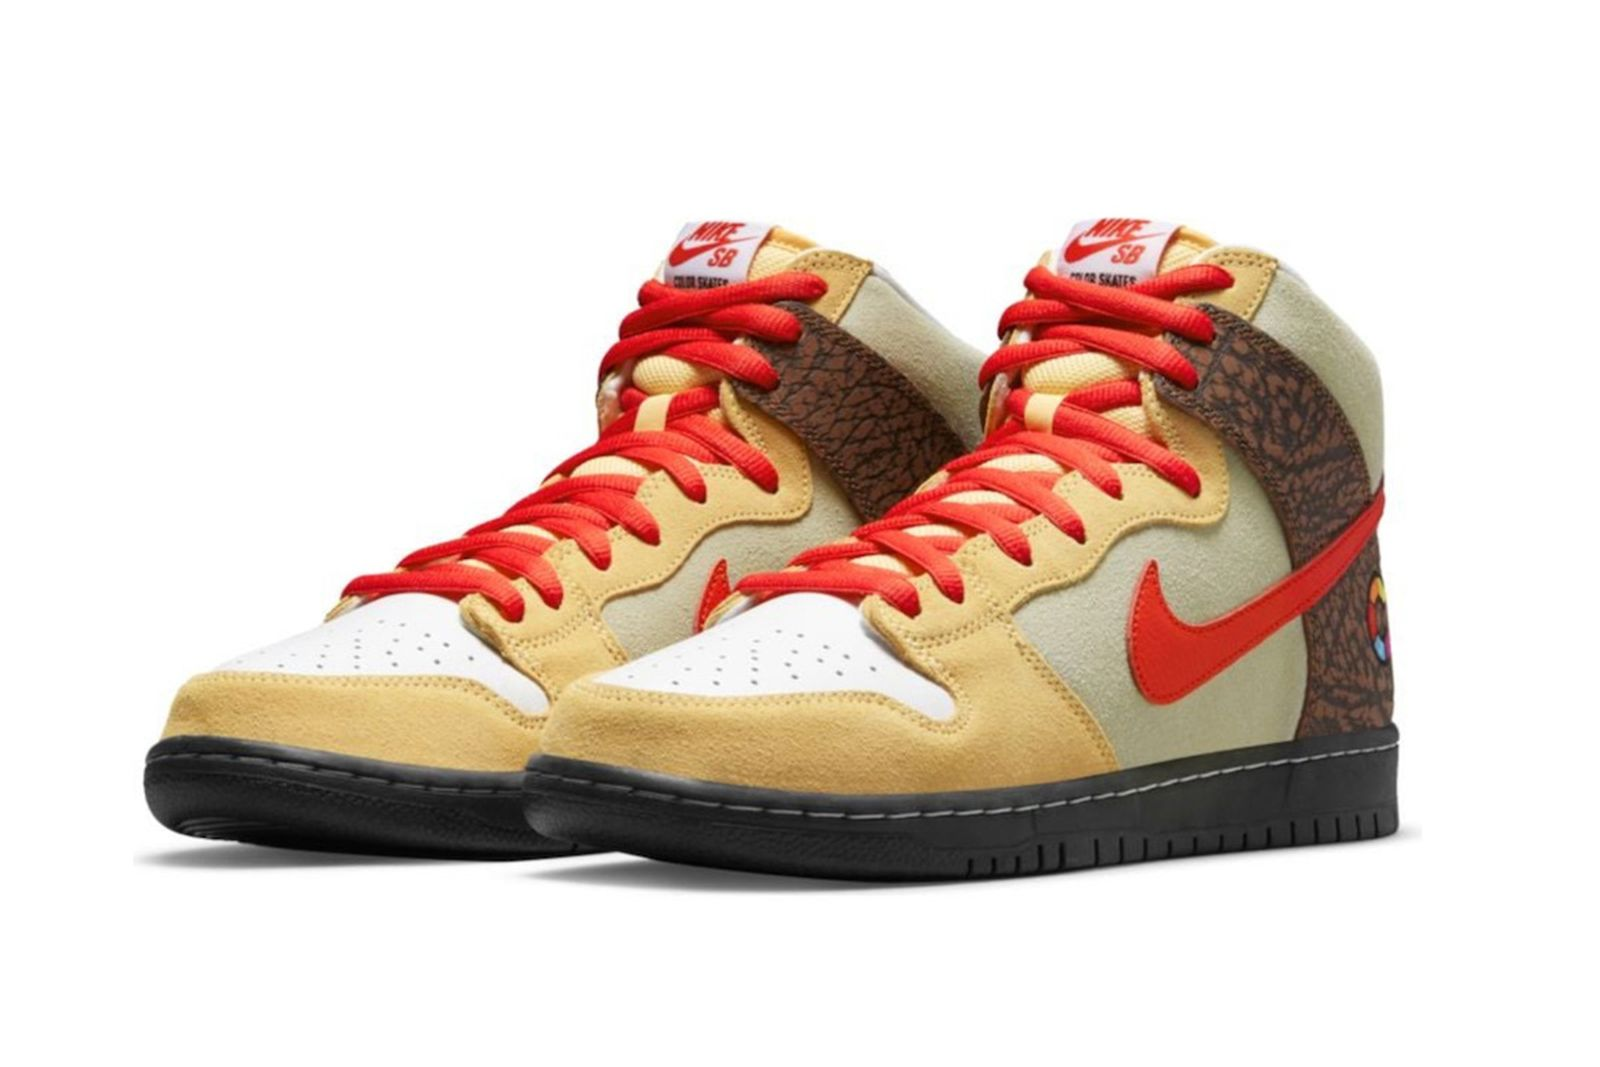 color-skates-nike-sb-dunk-high-release-date-price-06